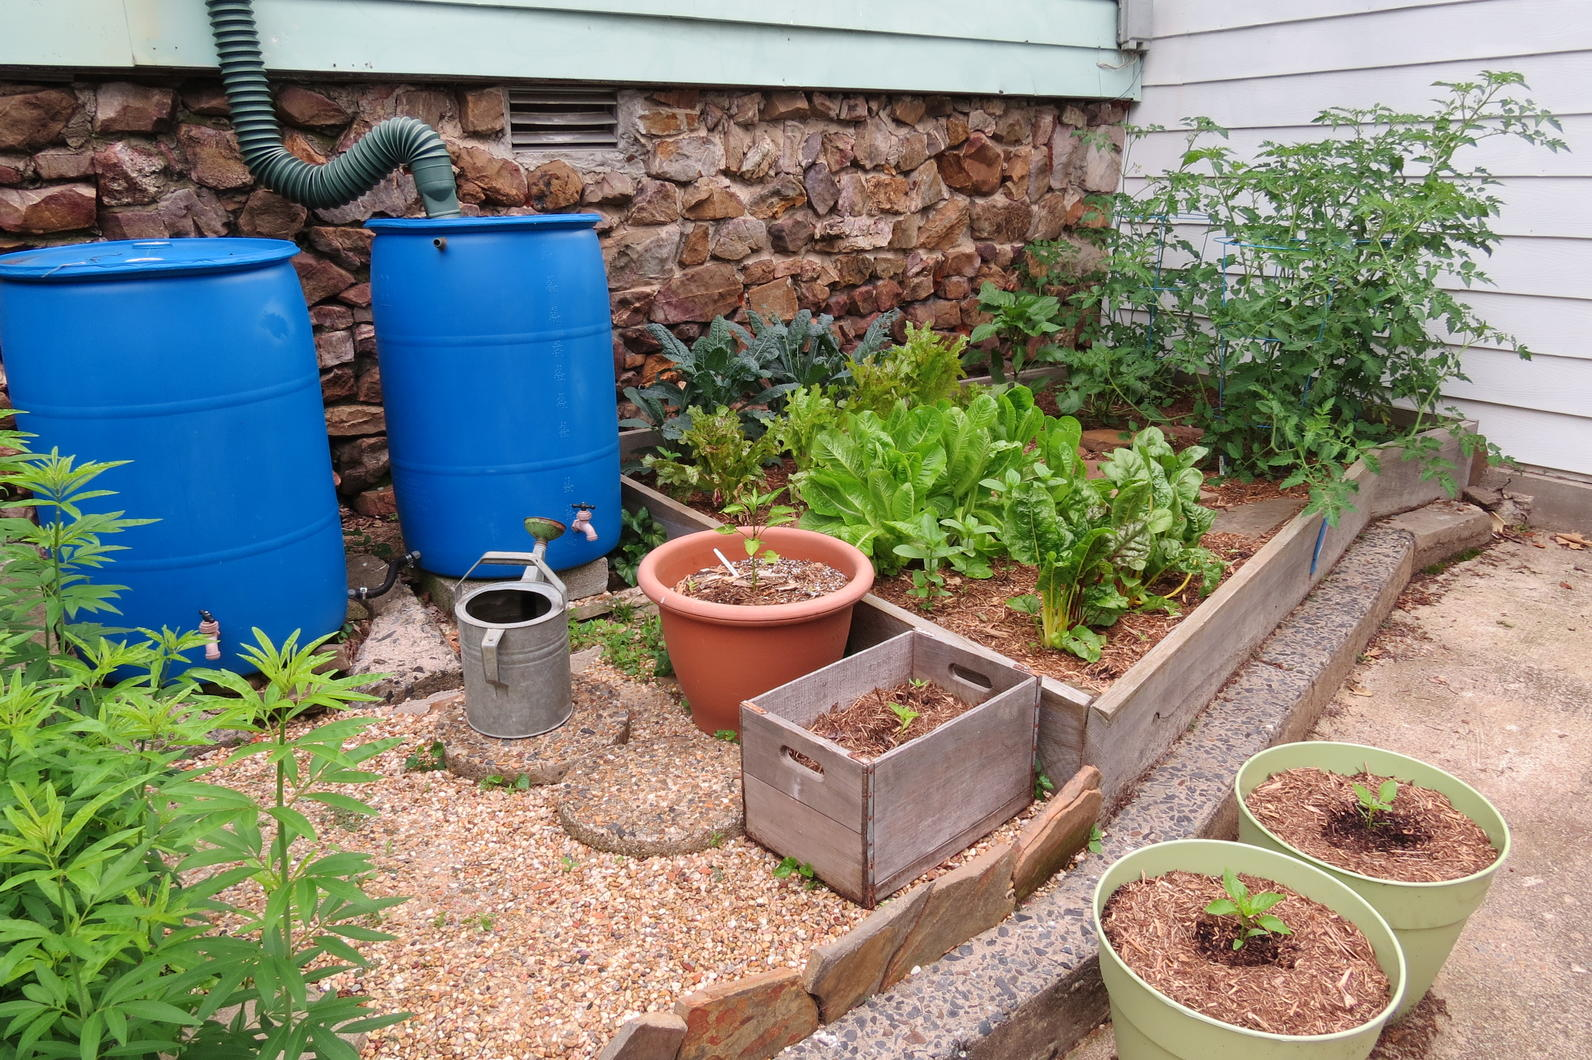 Rain Barrels Store For Use In Your Garden. Photo: Dan Scheiman